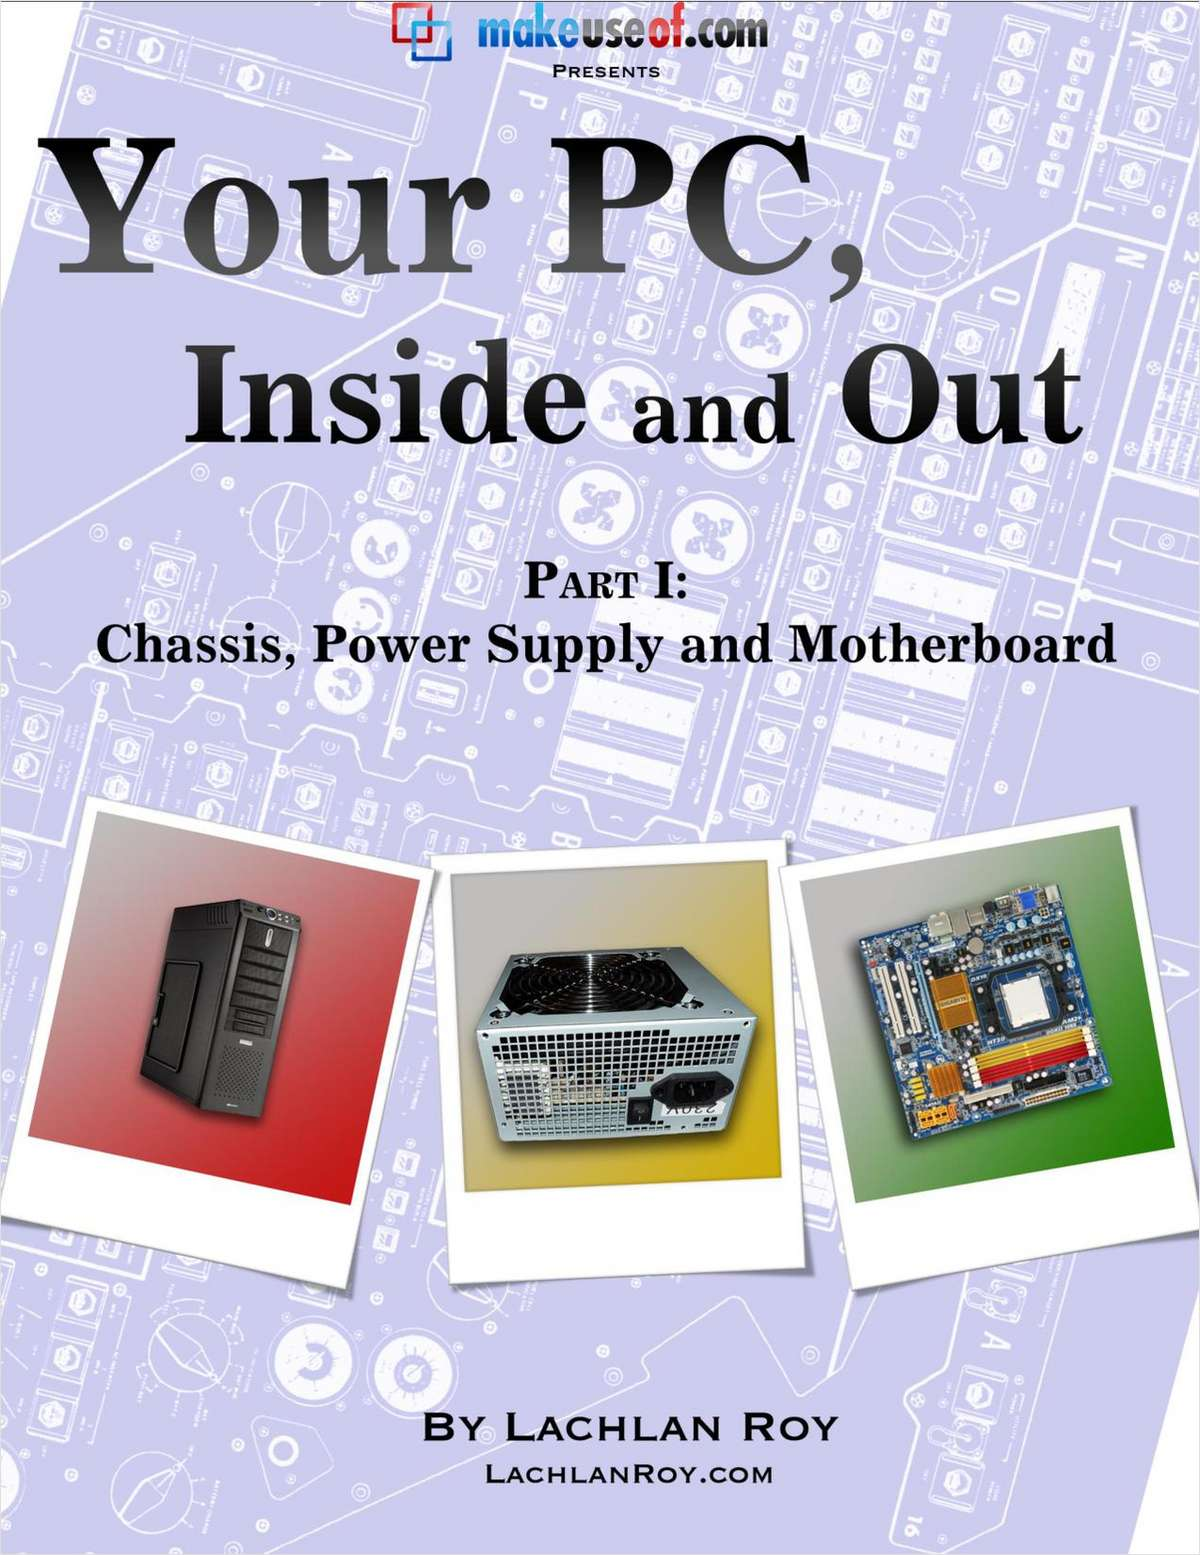 Your PC, Inside and Out: Part 1 - Chassis, Power Supply and Motherboard